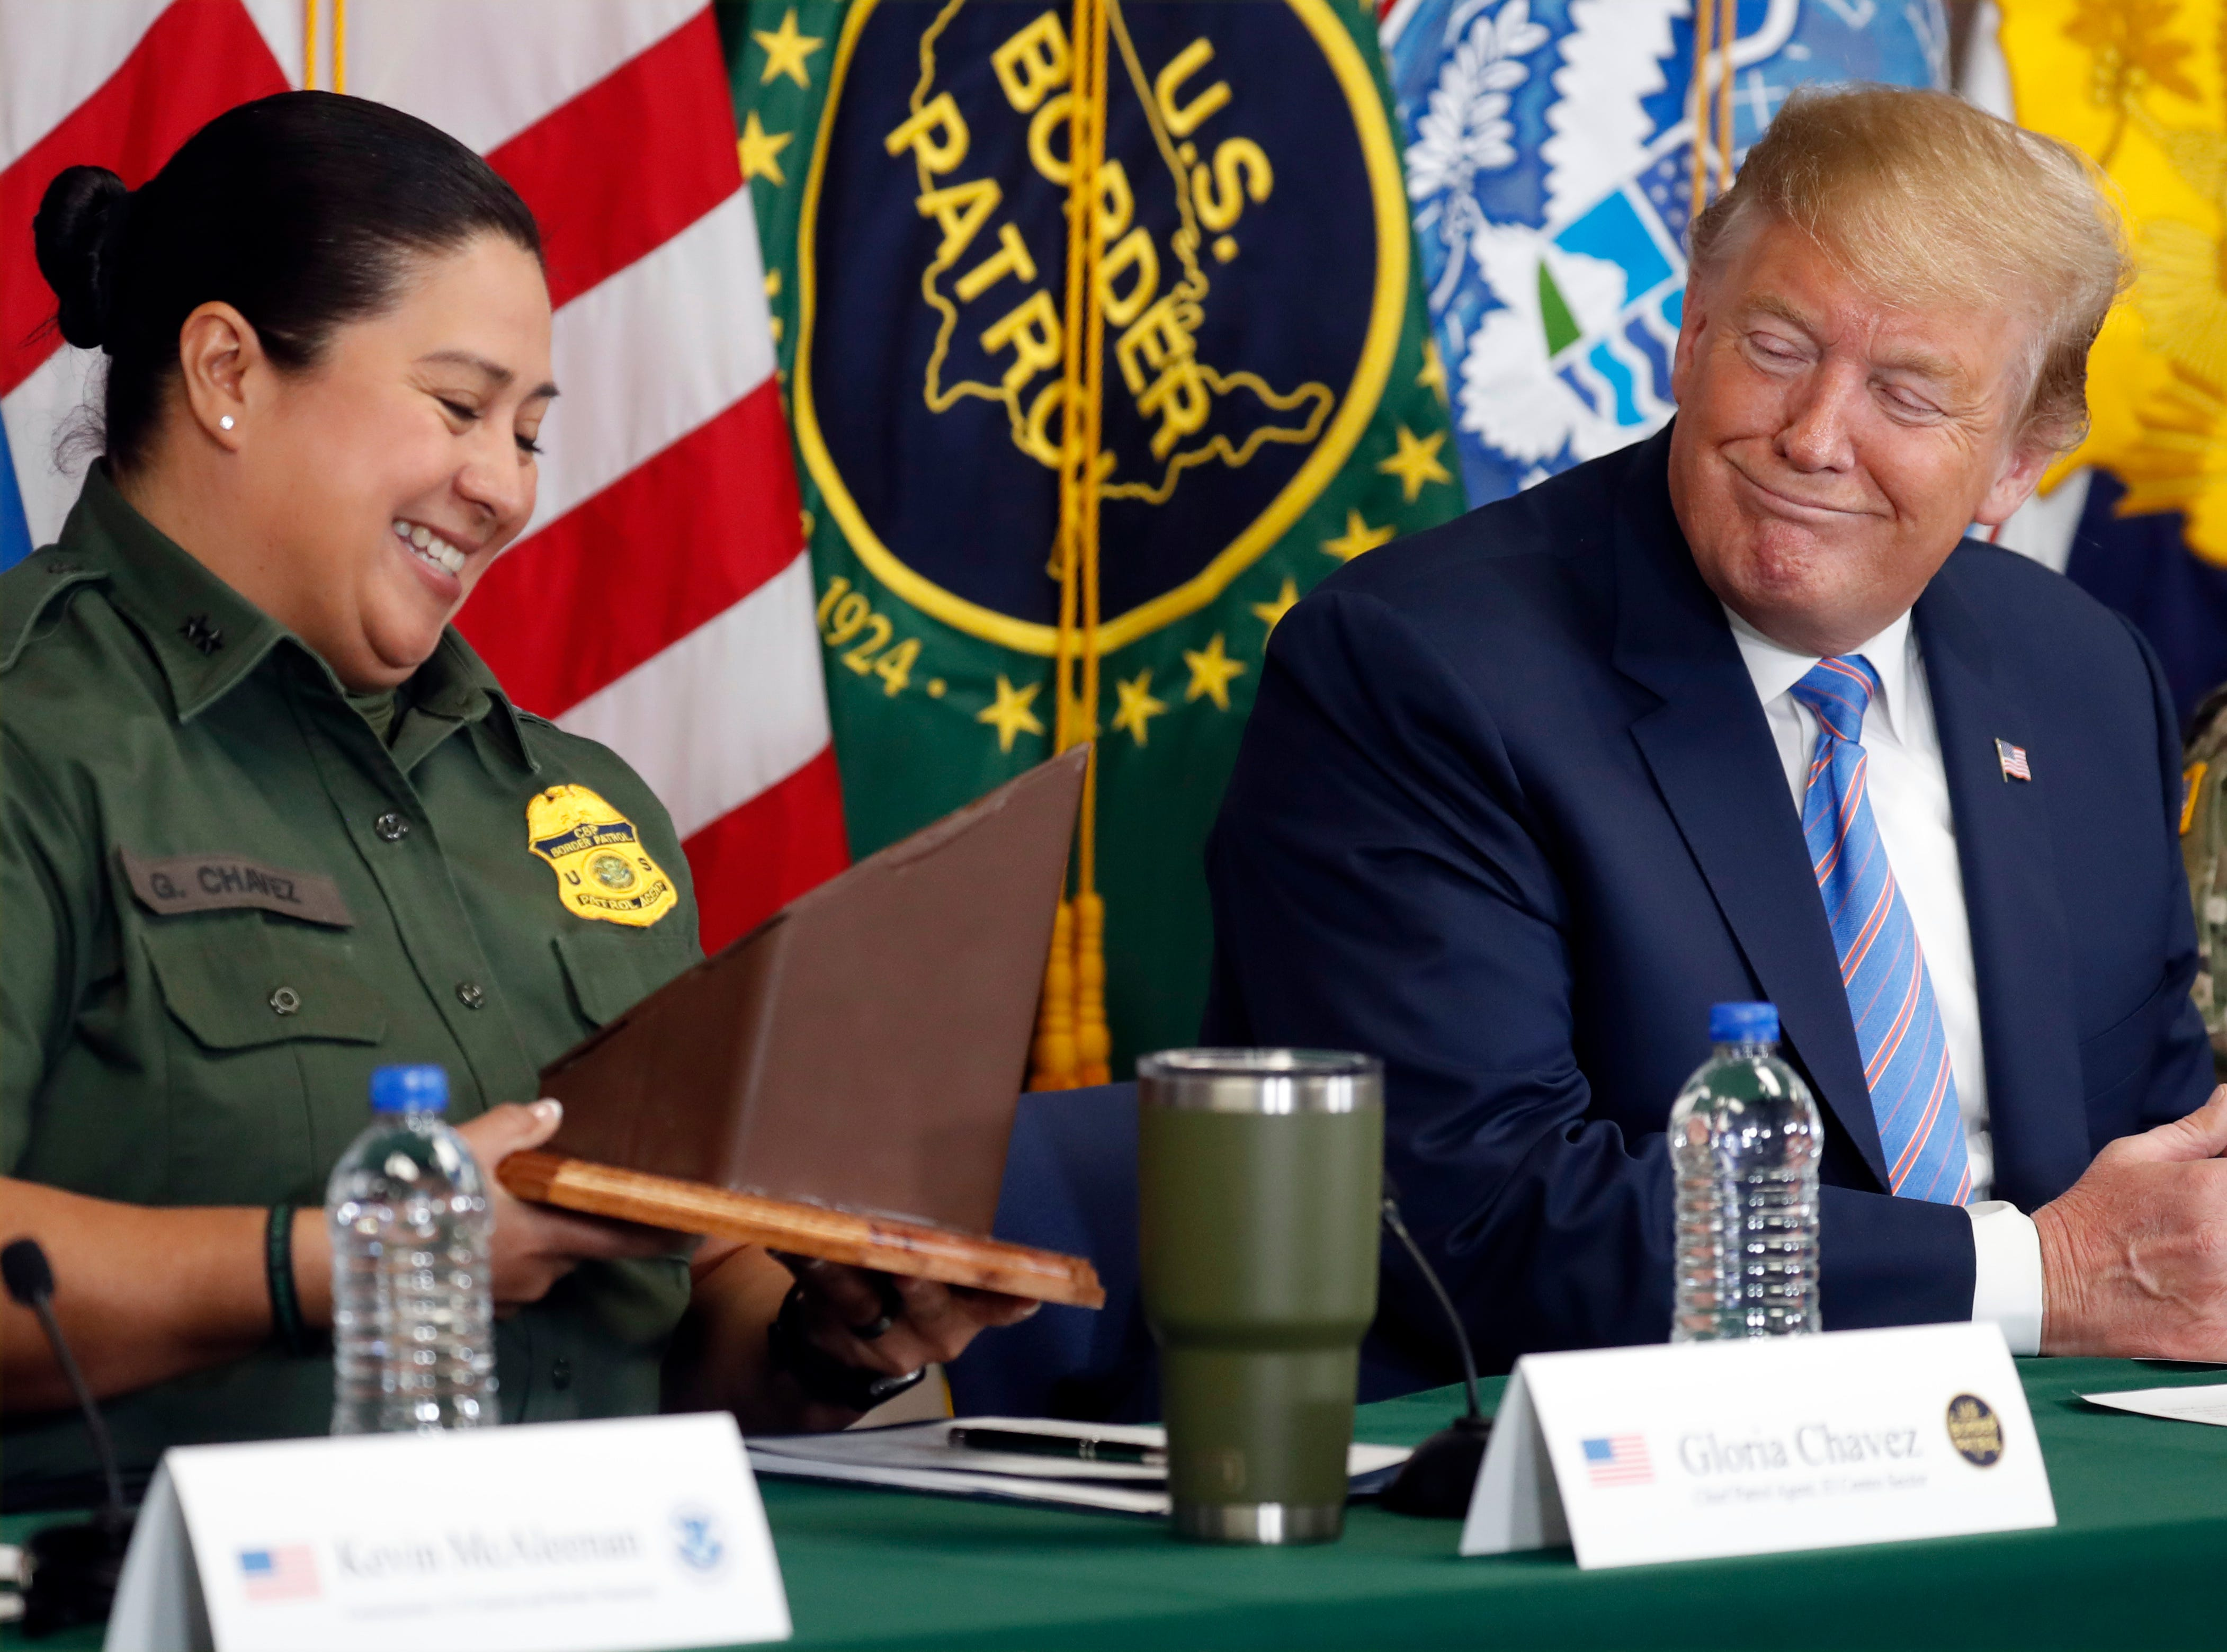 President Donald Trump receives a gift from Gloria Chavez with U.S. Customs and Border Protection at a roundtable on immigration and border security at the U.S. Border Patrol Calexico Station in Calexico, California, April 5, 2019.